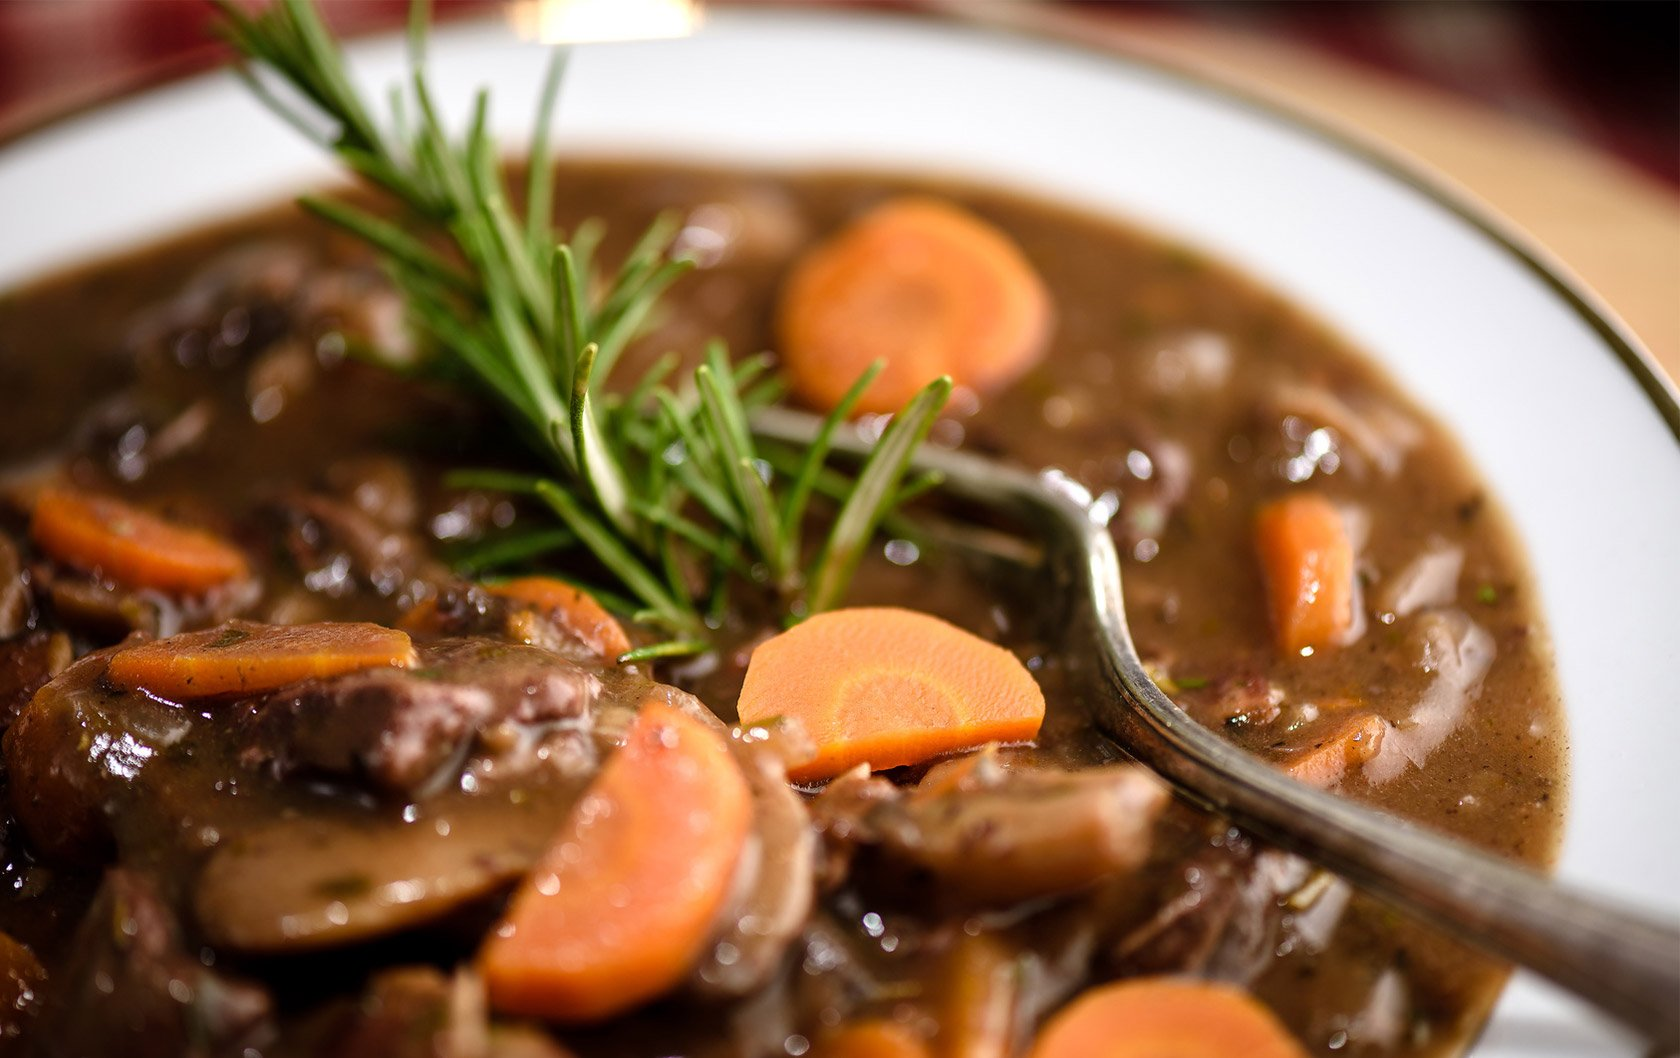 Easy Recipe for Boeuf Bourguignon or French Beef Stew